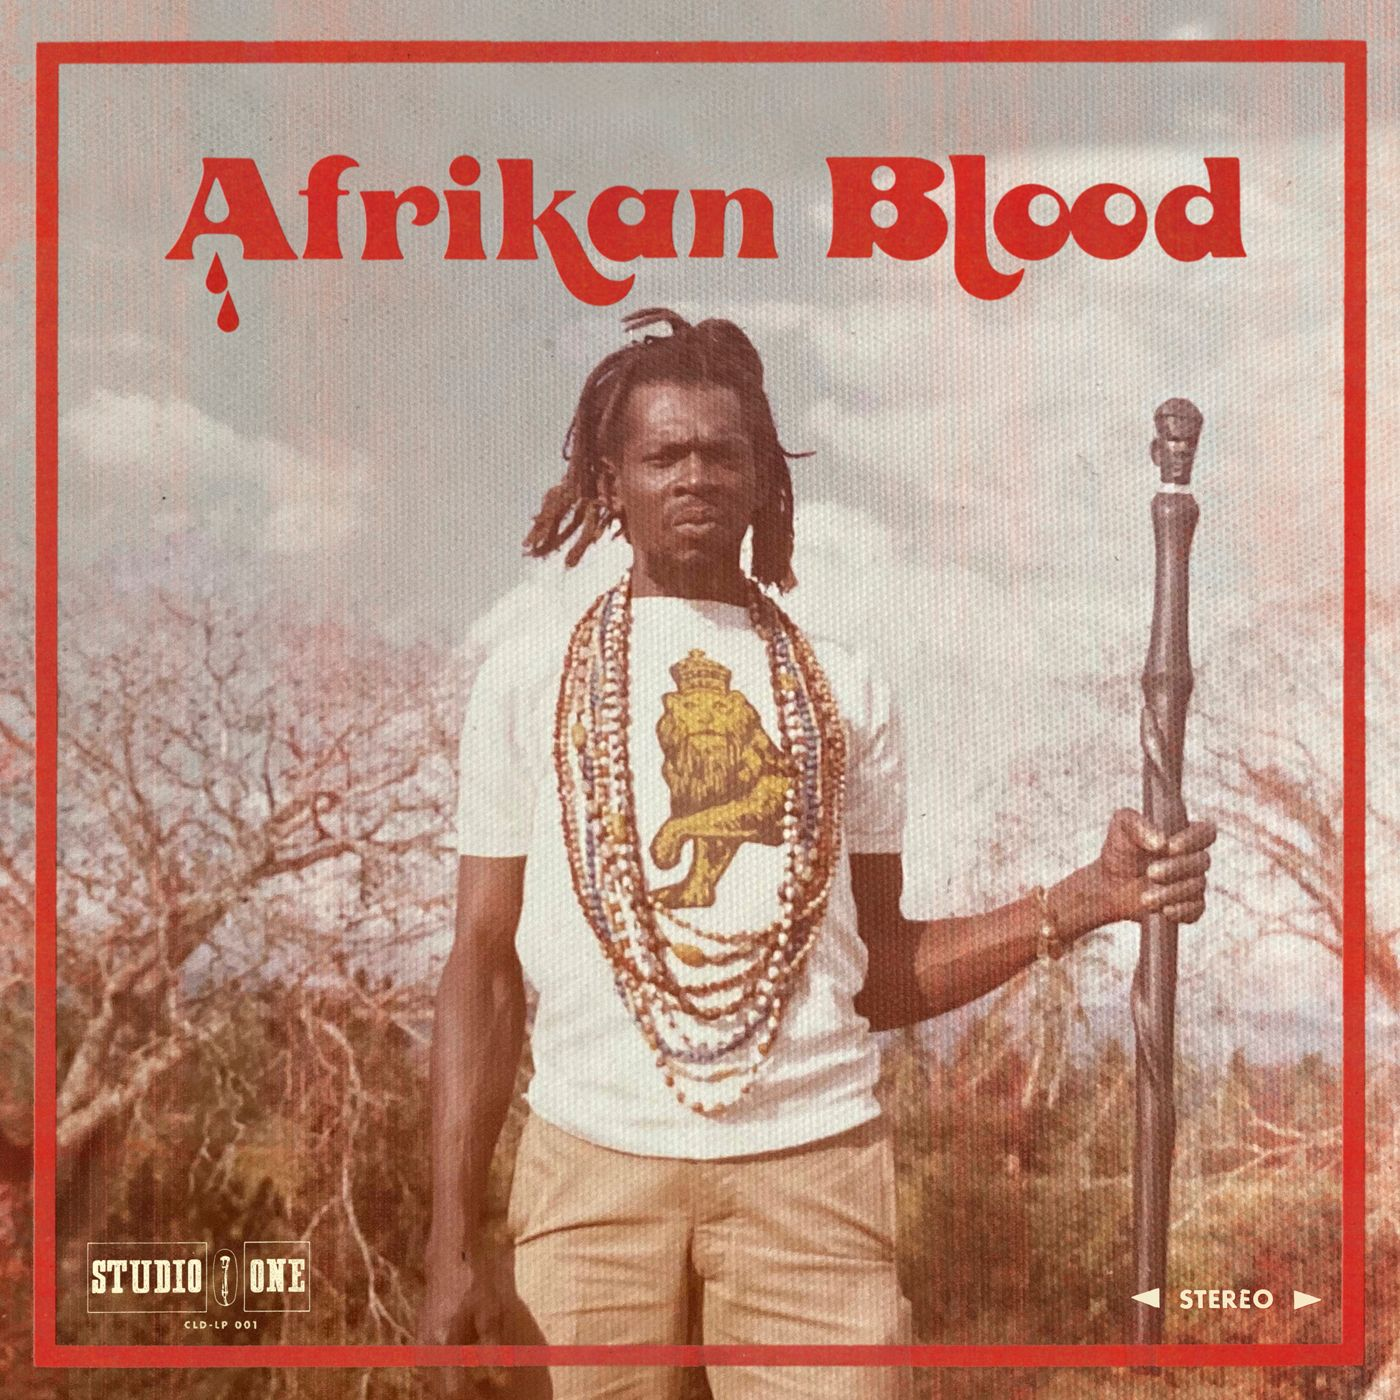 Various Artists - Studio One - Afrikan Blood (RSD 2020 Black Friday) Vinyl Record Album